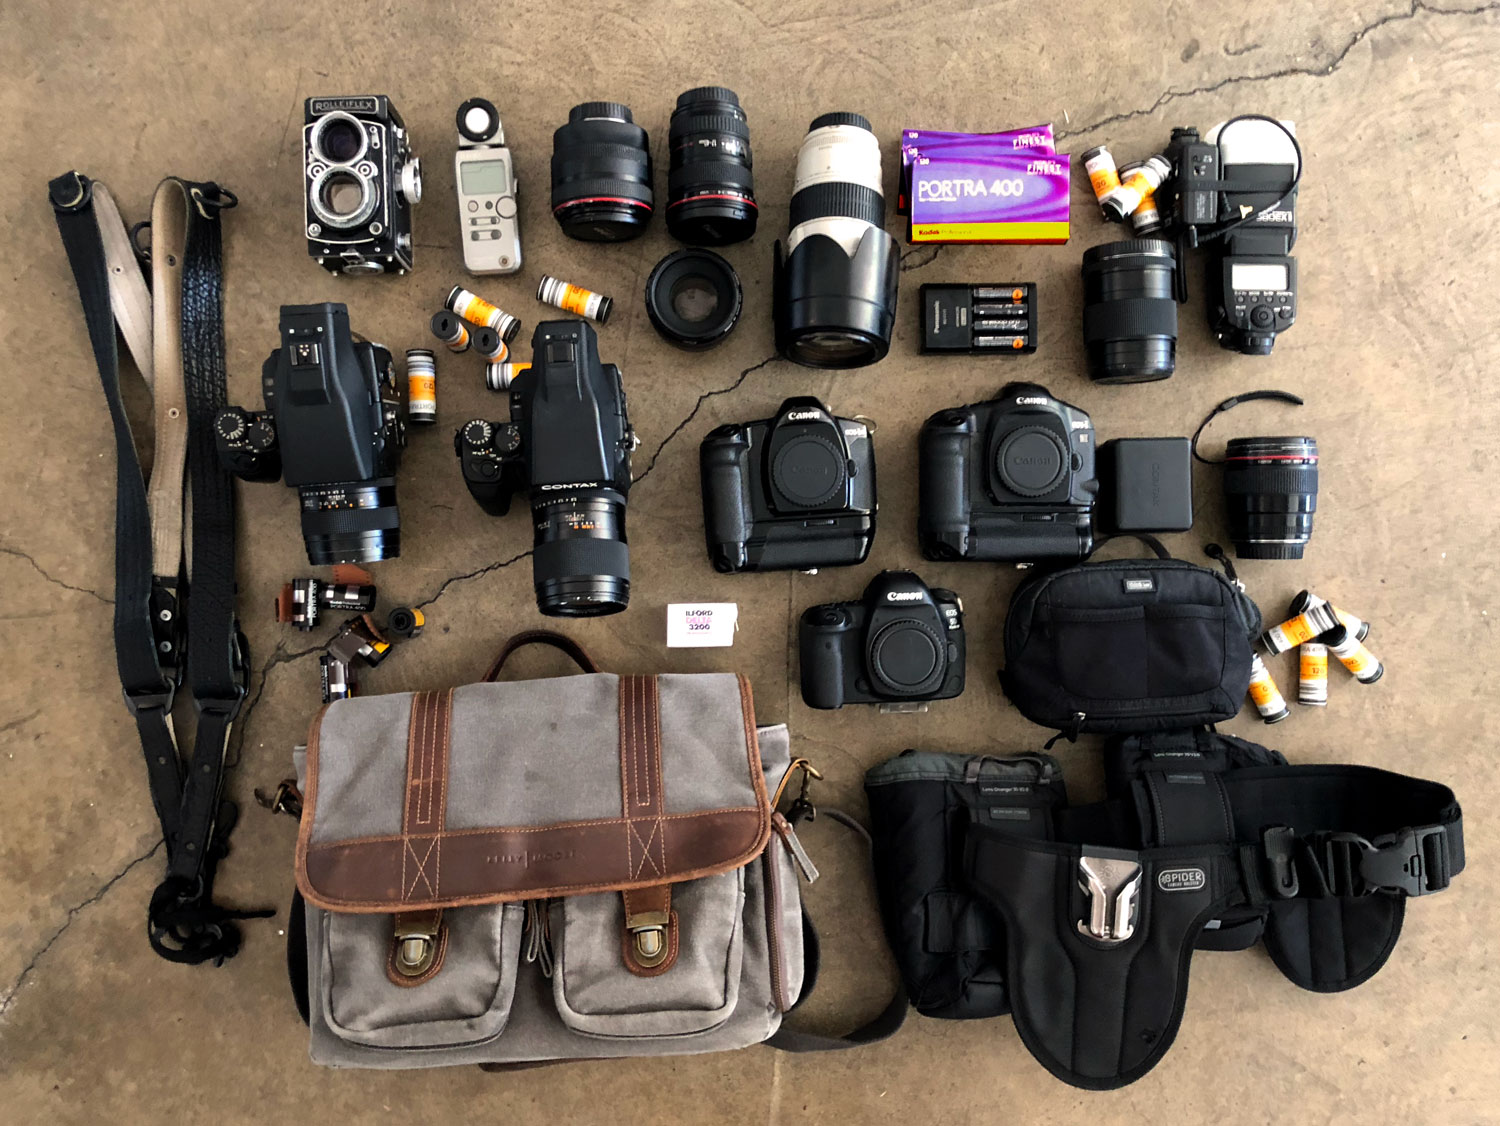 Braedon Flynn's Camera Bag Contents